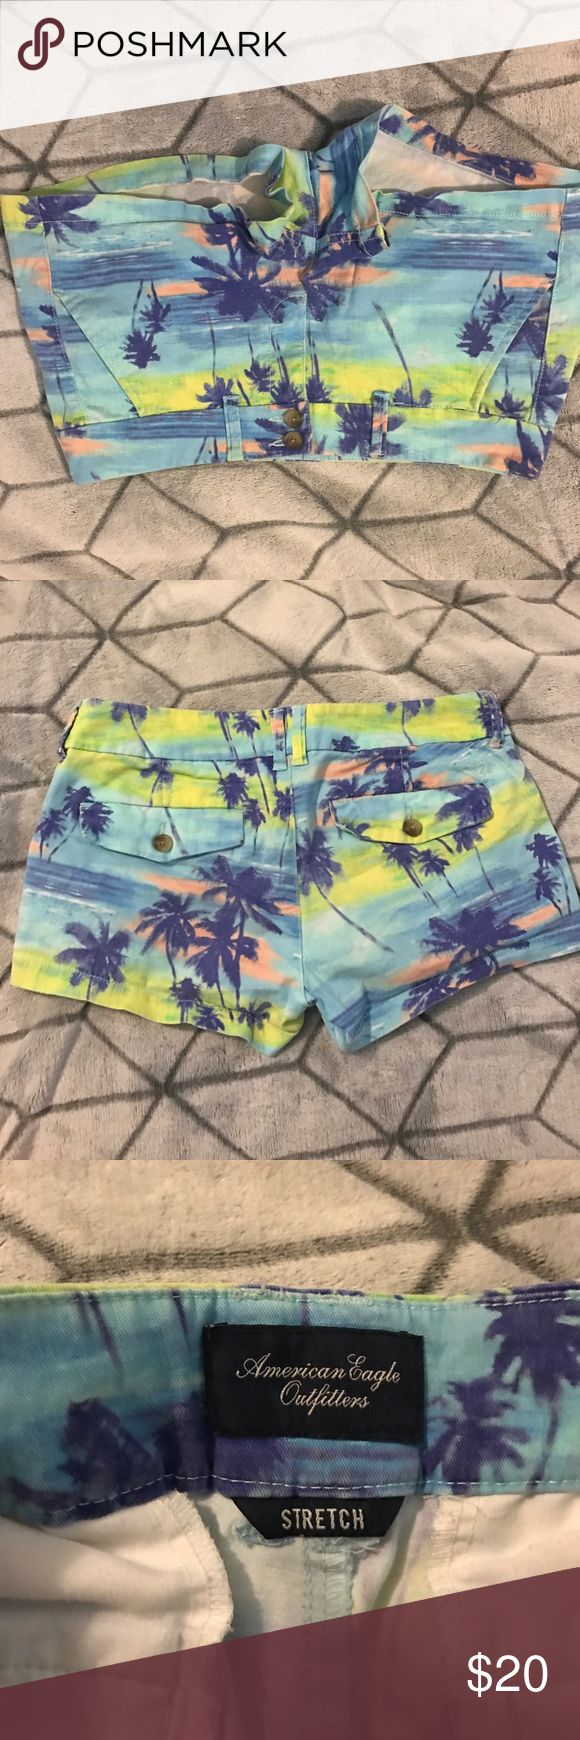 American Eagle Tropical Shorts Super cute tropcial AEO shorts! Great condition; I just never wear them anymore. Non smoker home. Willing to come down on price, please make offers. :) American Eagle Outfitters Shorts